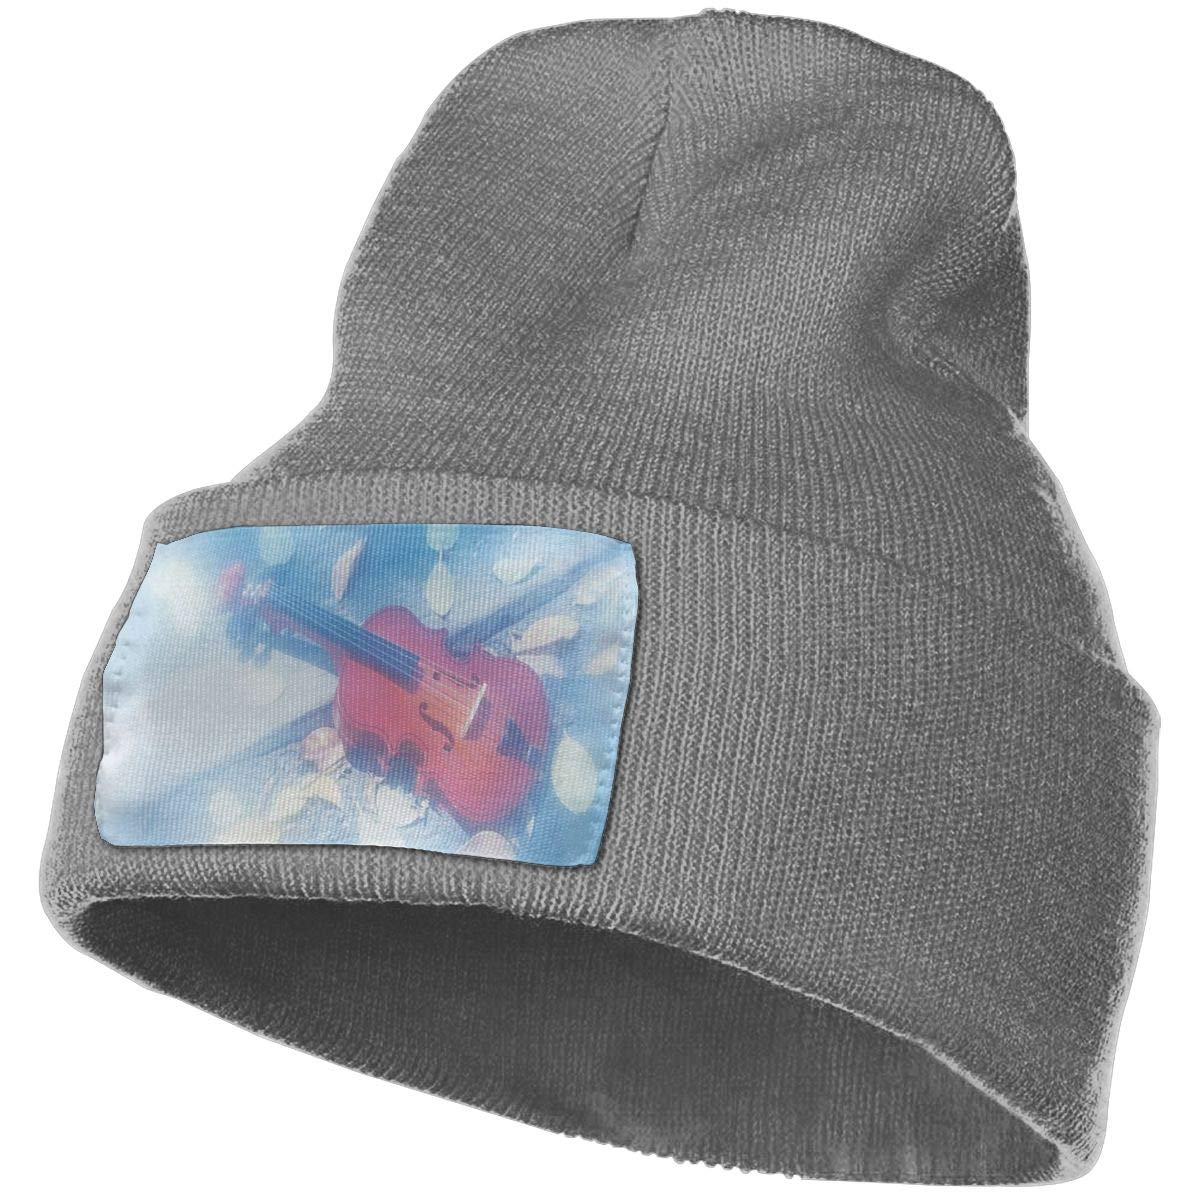 JimHappy A Romantic Violin Hat for Men and Women Winter Warm Hats Knit Slouchy Thick Skull Cap